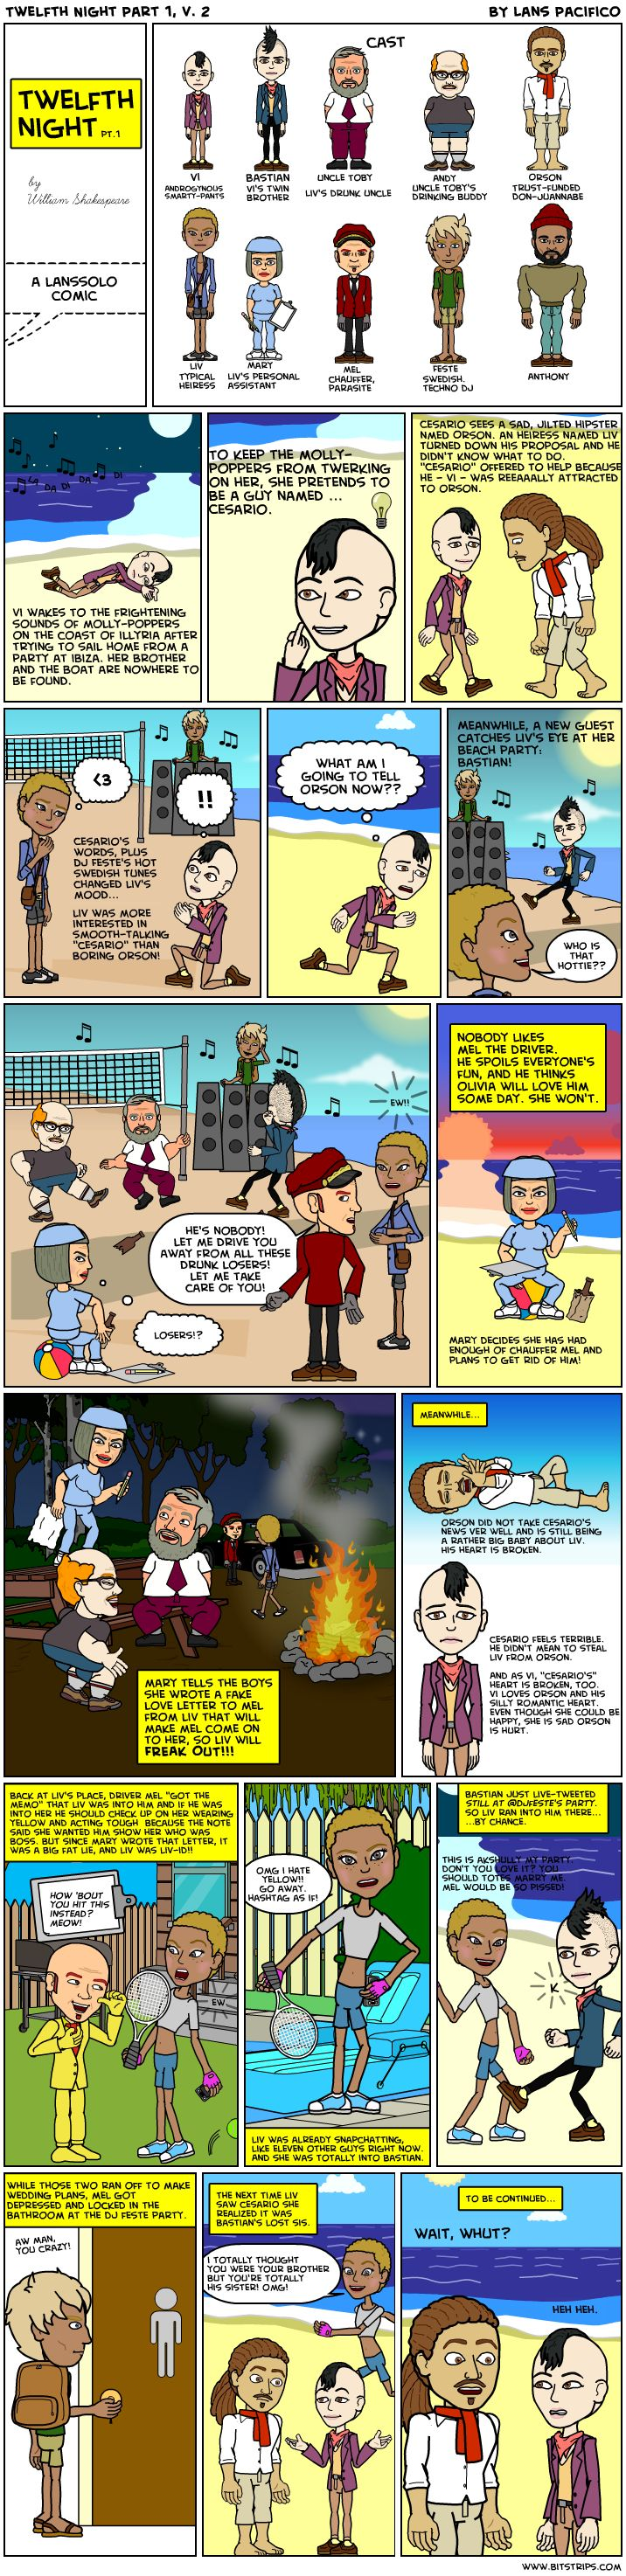 Winter 2013 cohort member Lans's awesome Bitstrip on Twelfth Night (part 1 of 2).